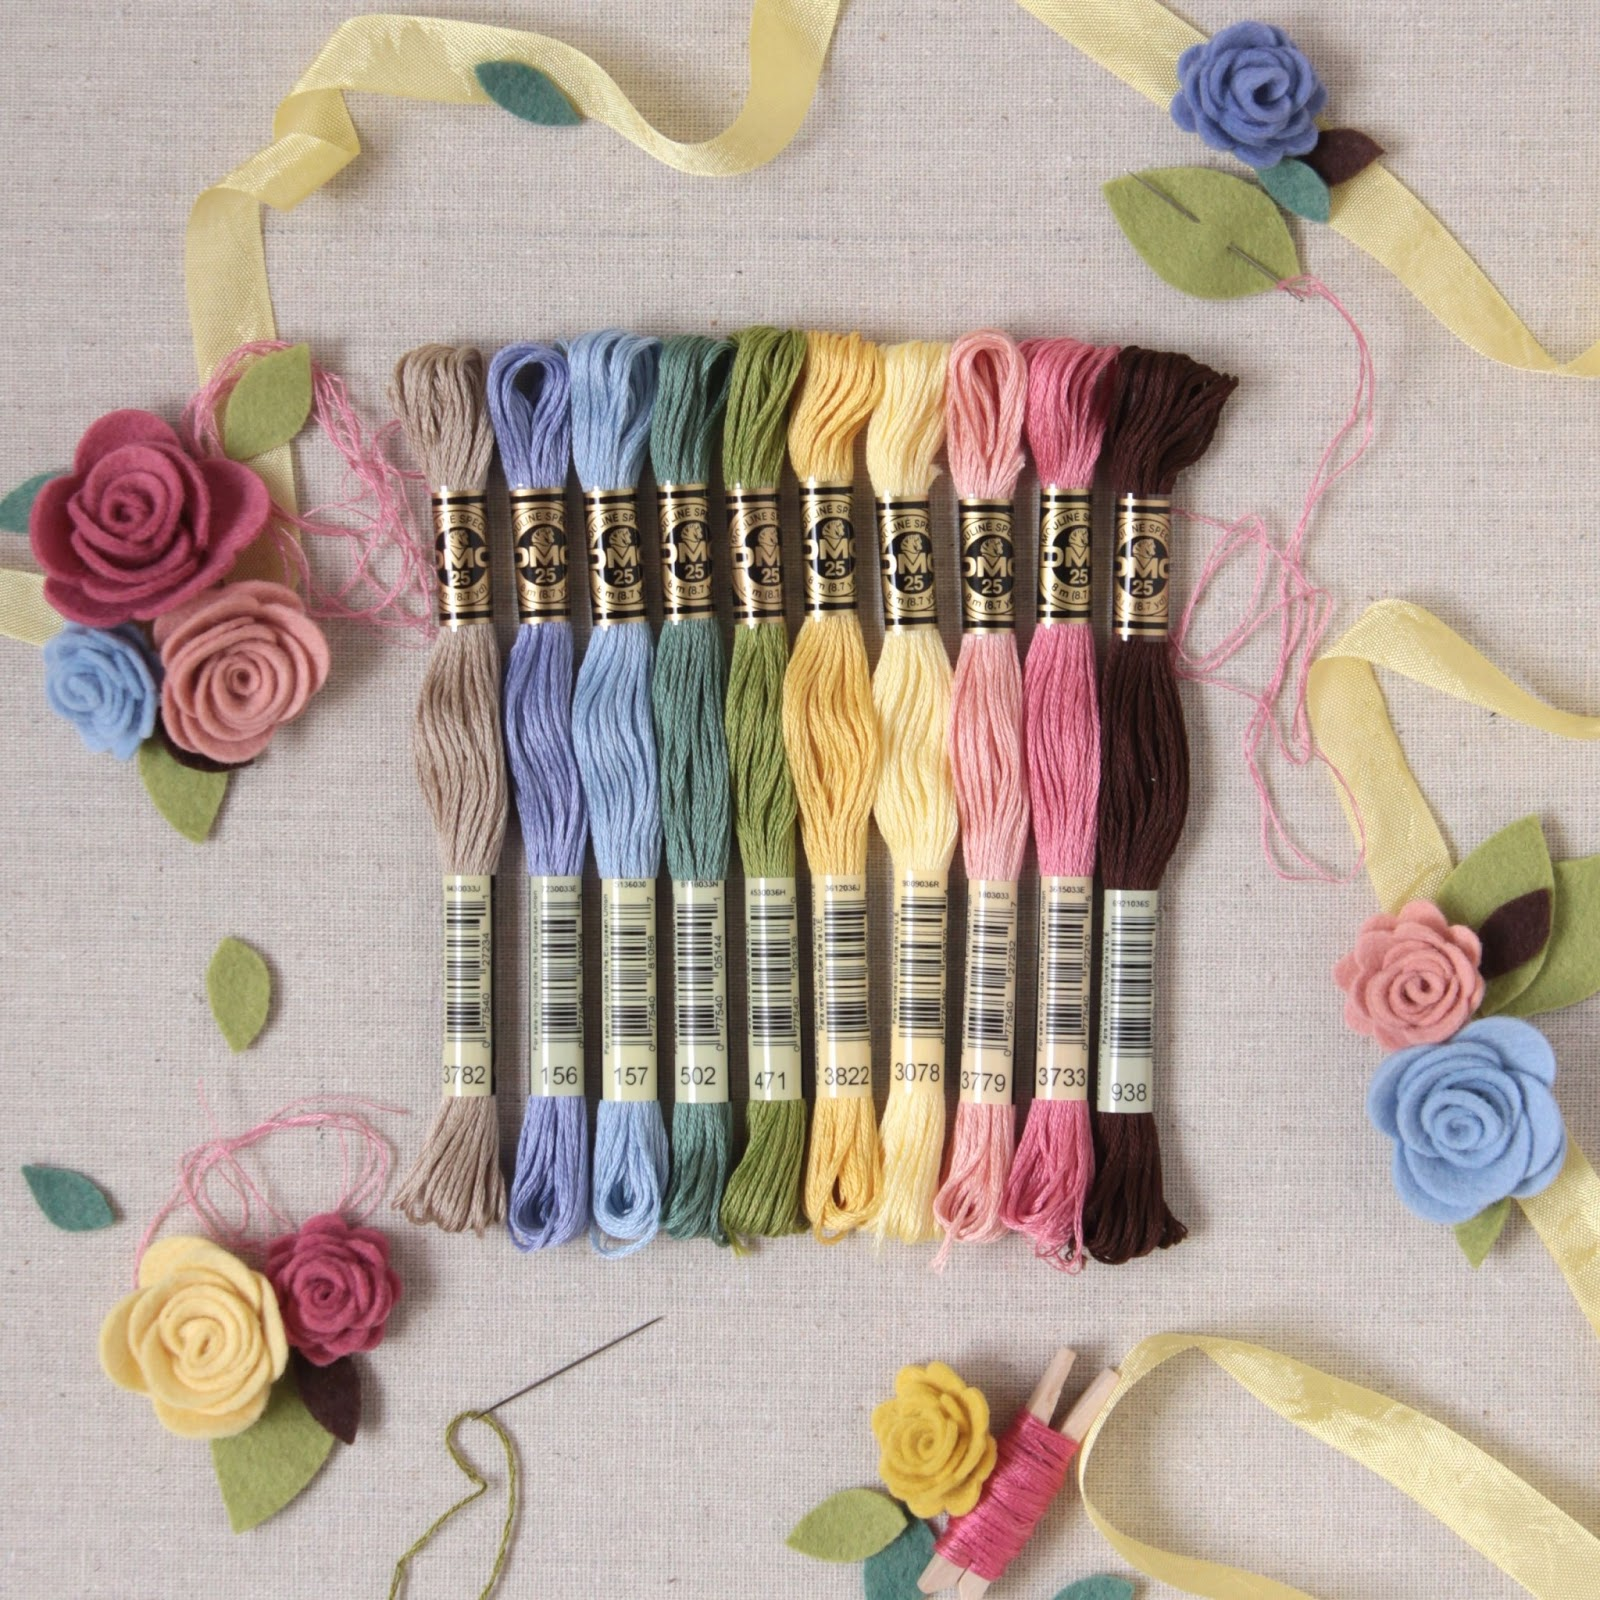 Benzie a fanfare of felt embroidery floss